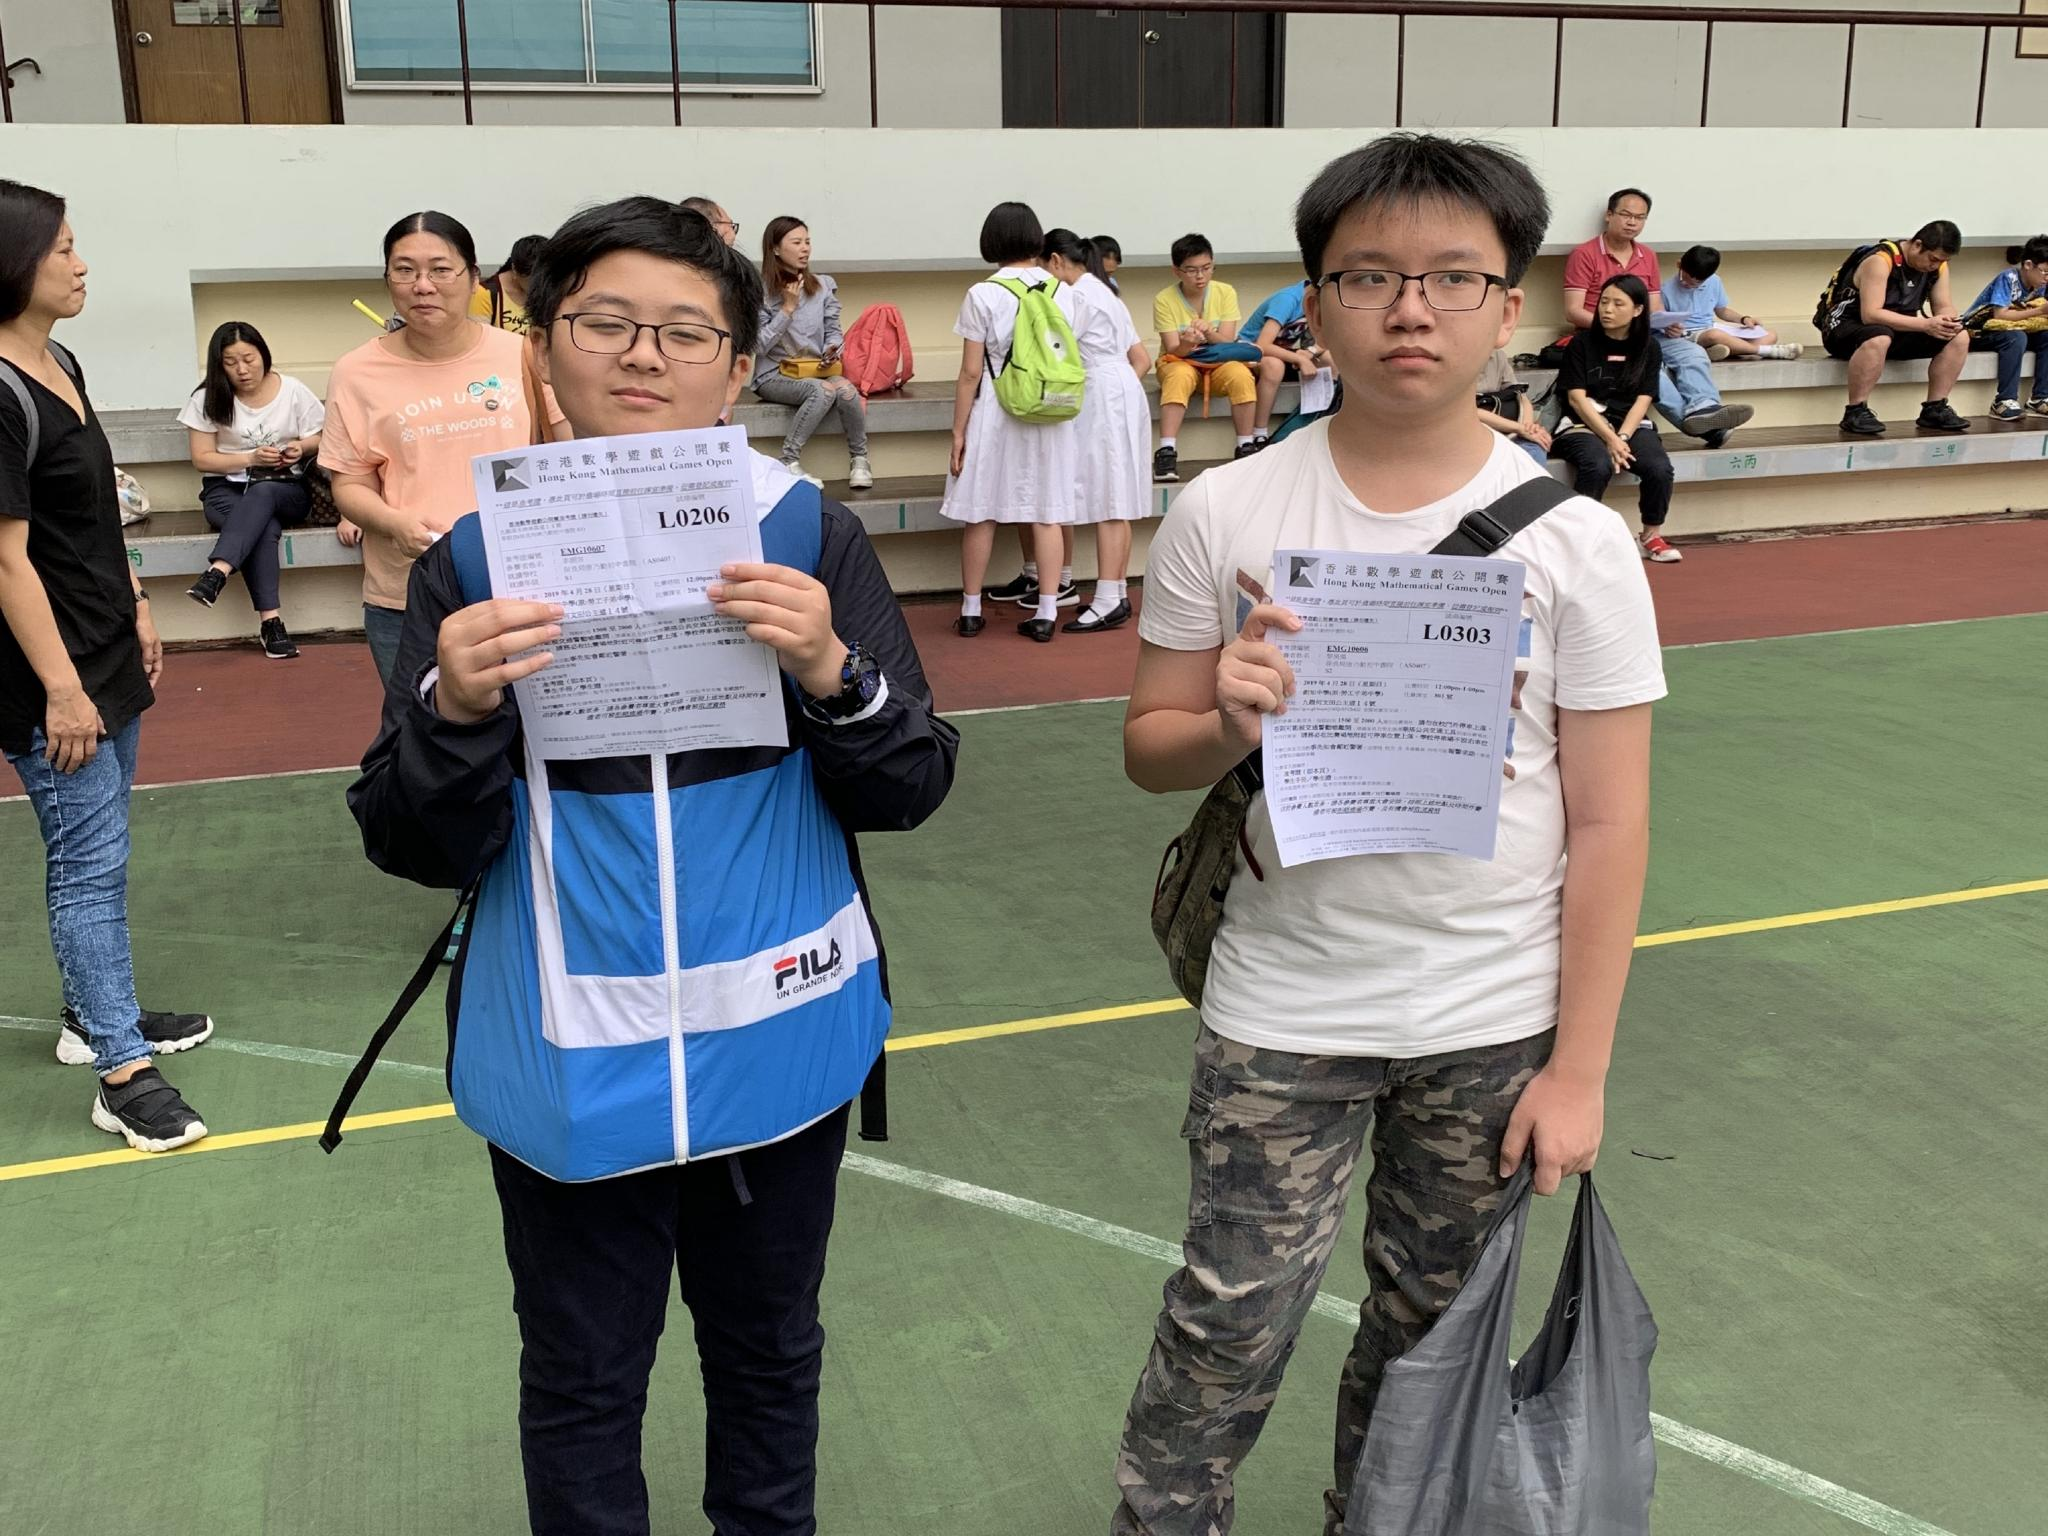 The two students compete with each other to win the game.